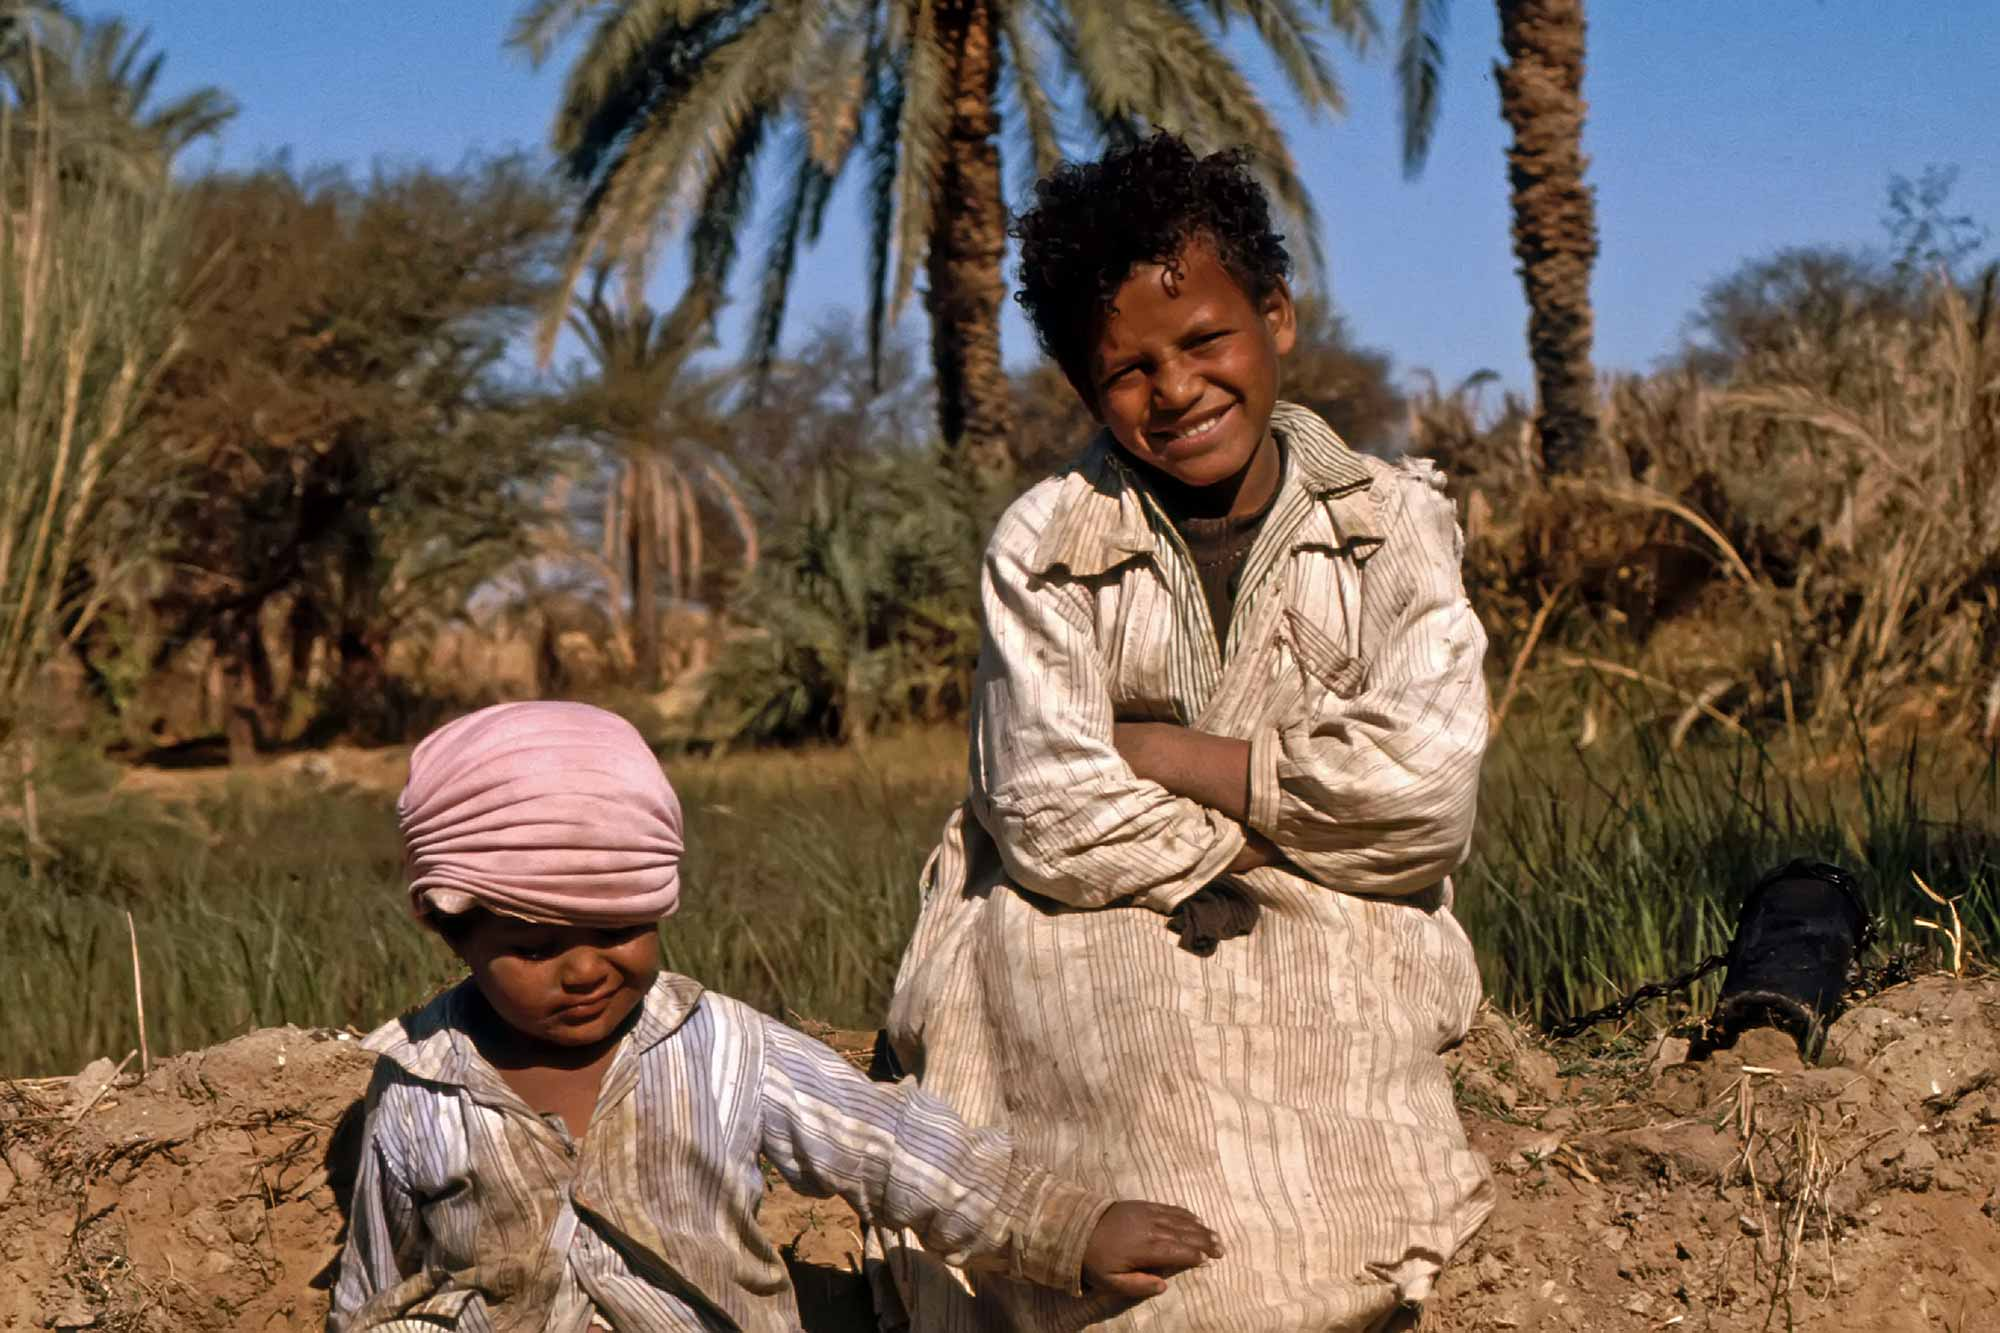 playing-kids-egypt-africa